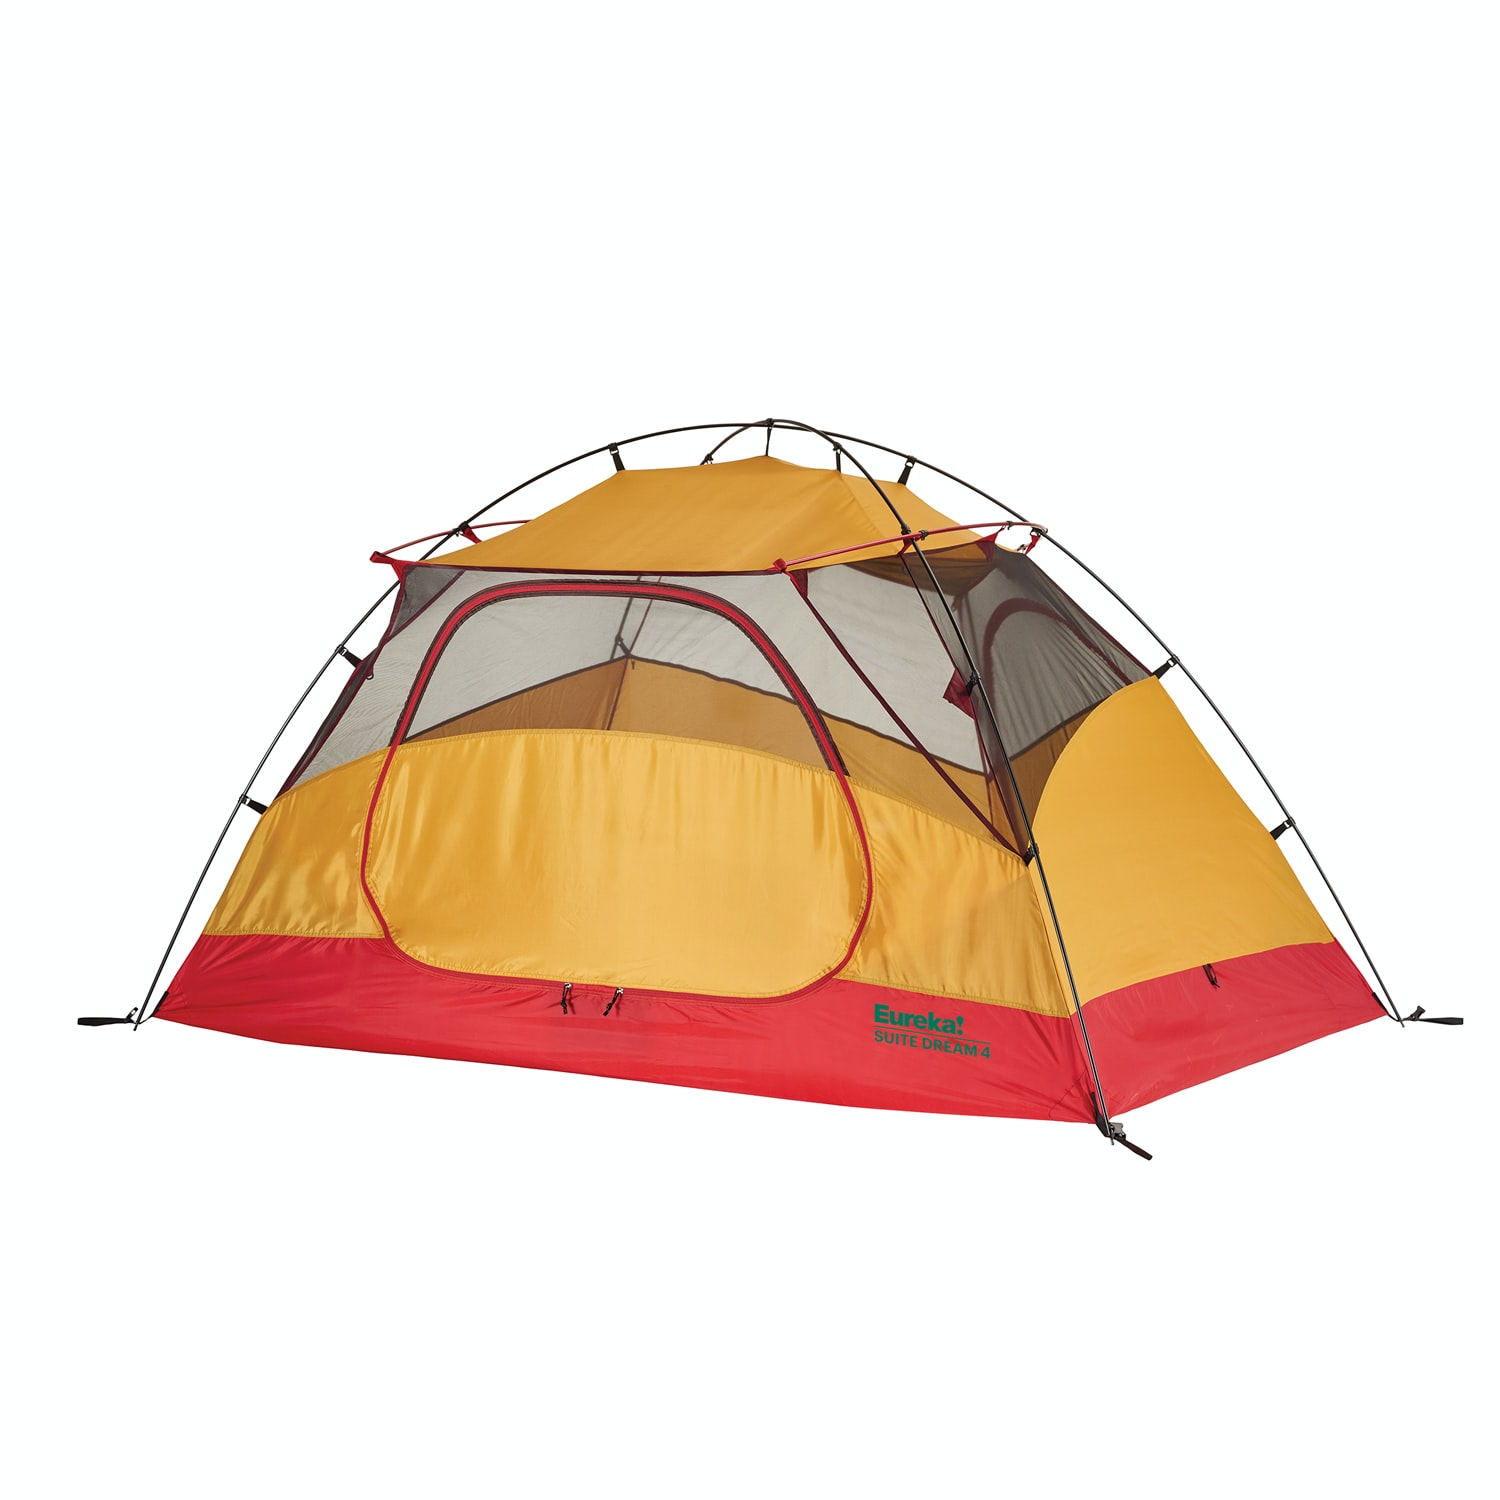 Eureka C&ing Suite Dream 4P Tent  sc 1 st  Huckberry & Eureka Camping Suite Dream 4P Tent | Huckberry